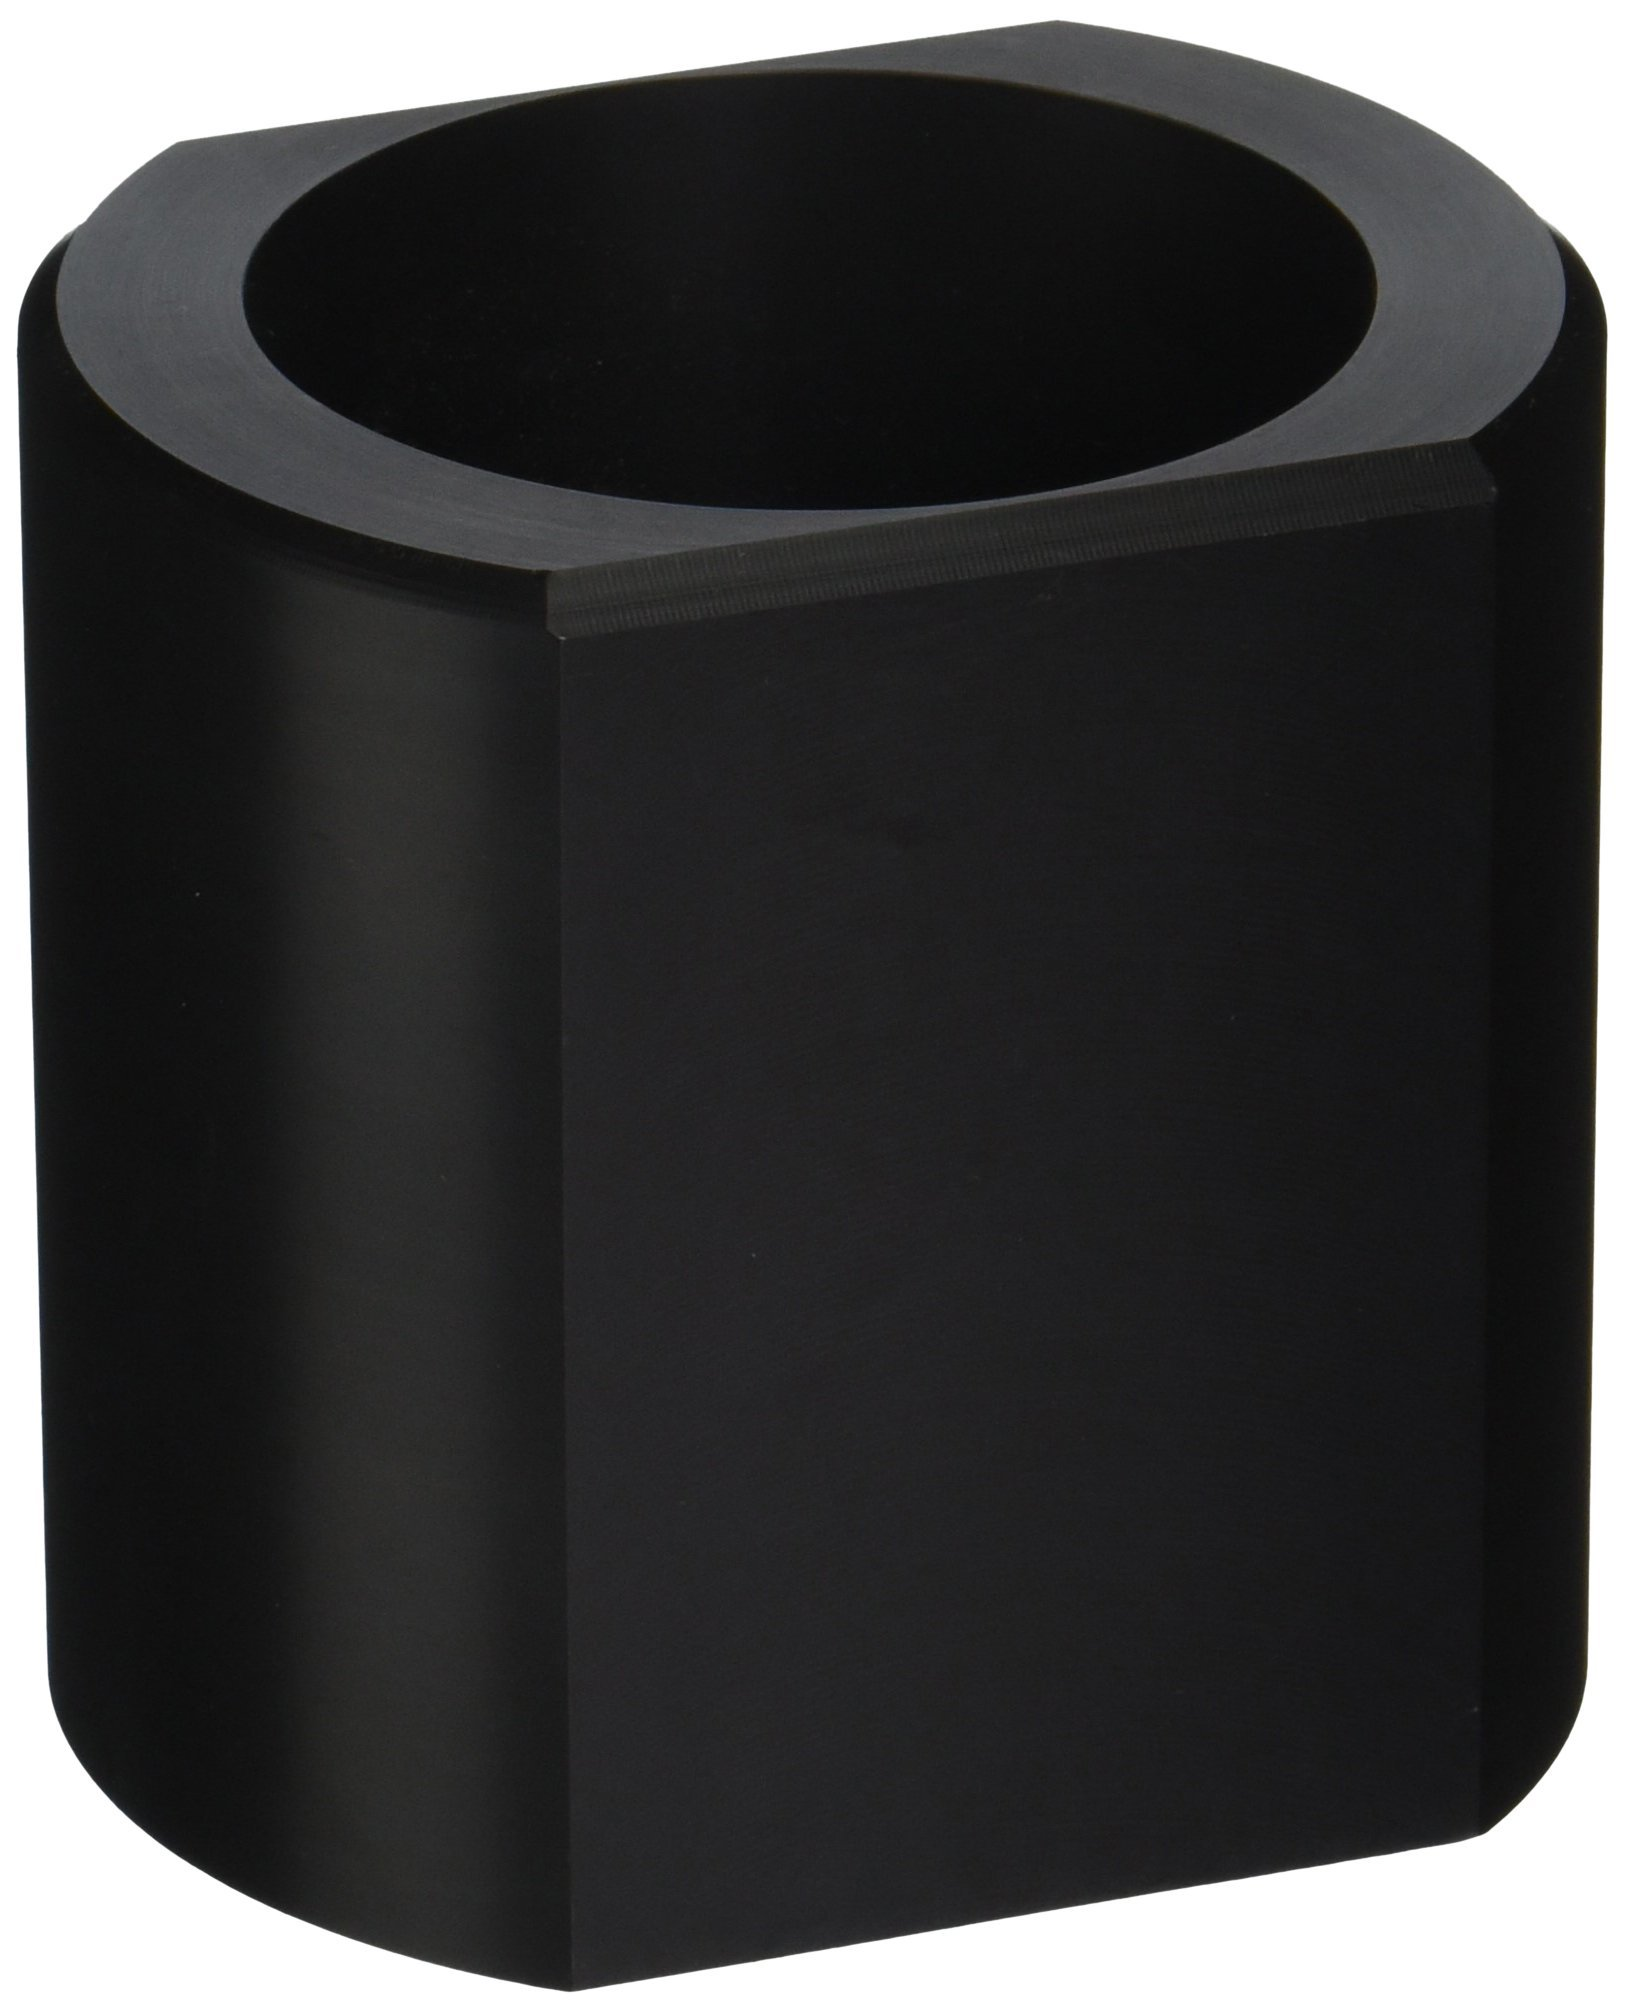 THERMO FISHER SCIENTIFIC 76006465 Centrifuge Adapter for Rectangular Bucket, Type D, 1 mL x 250 mL Capacity Tubes, Black